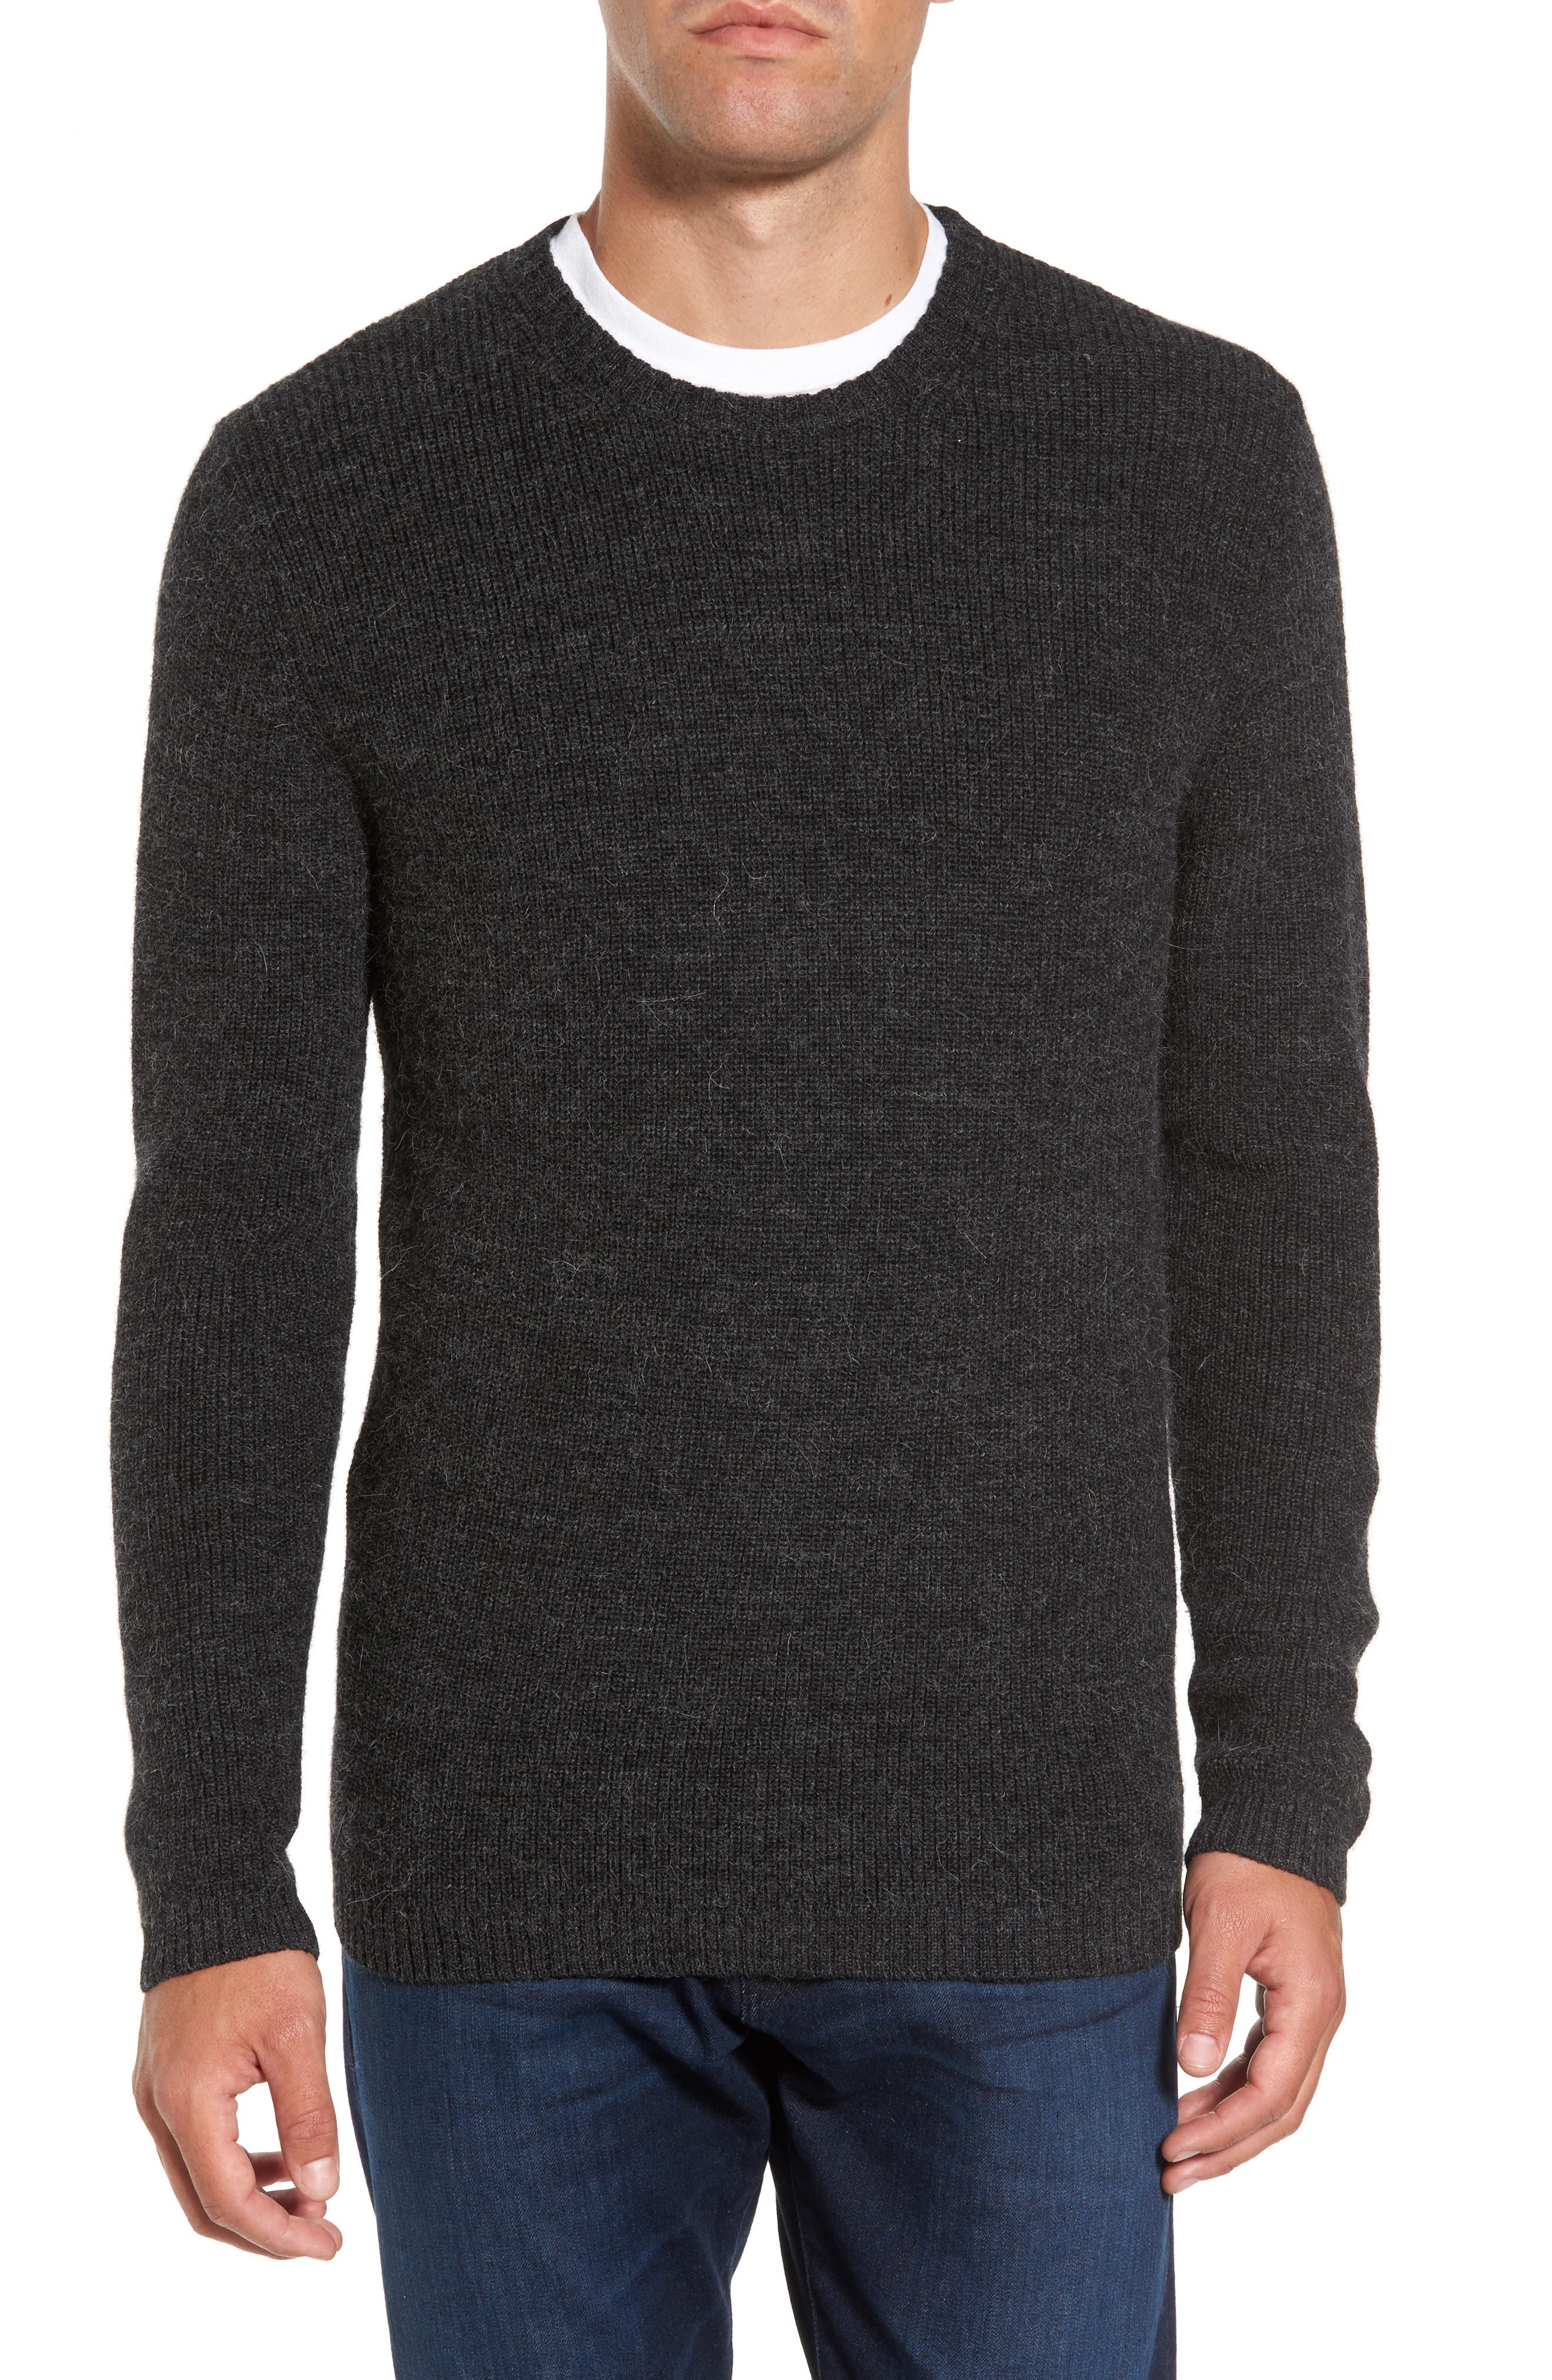 Whalers Bay Merino Wool Blend Sweater,                             Main thumbnail 1, color,                             001